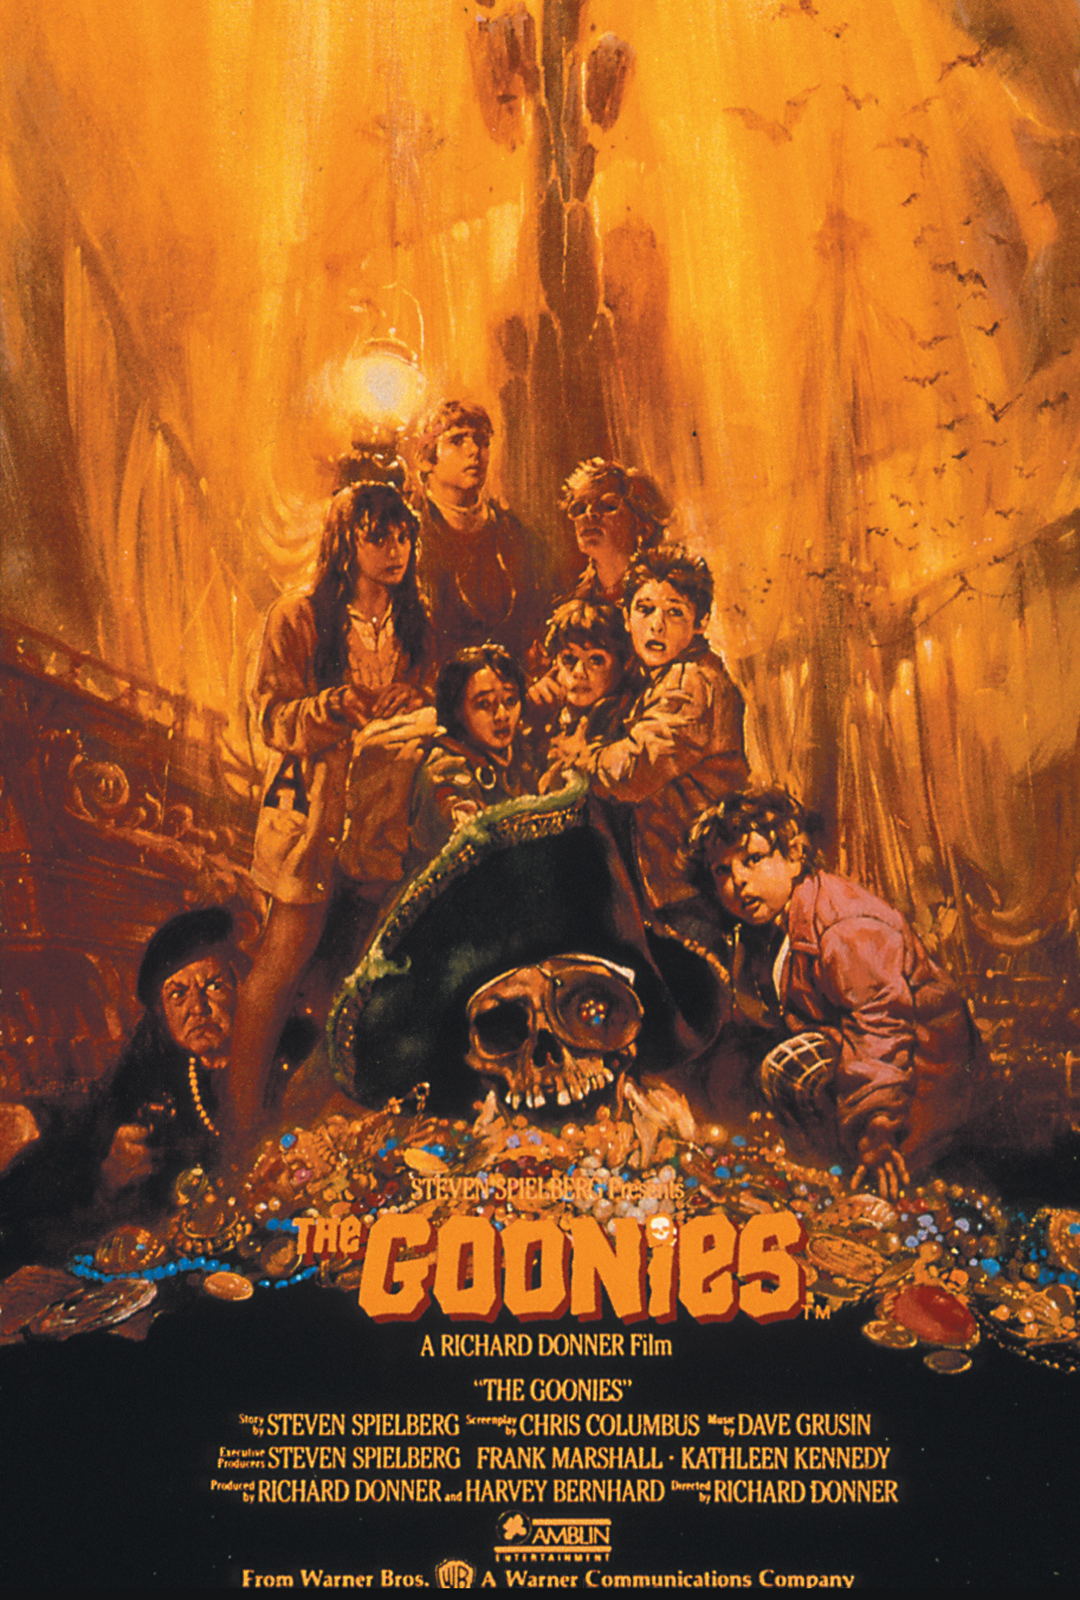 The goonies - wikipedia